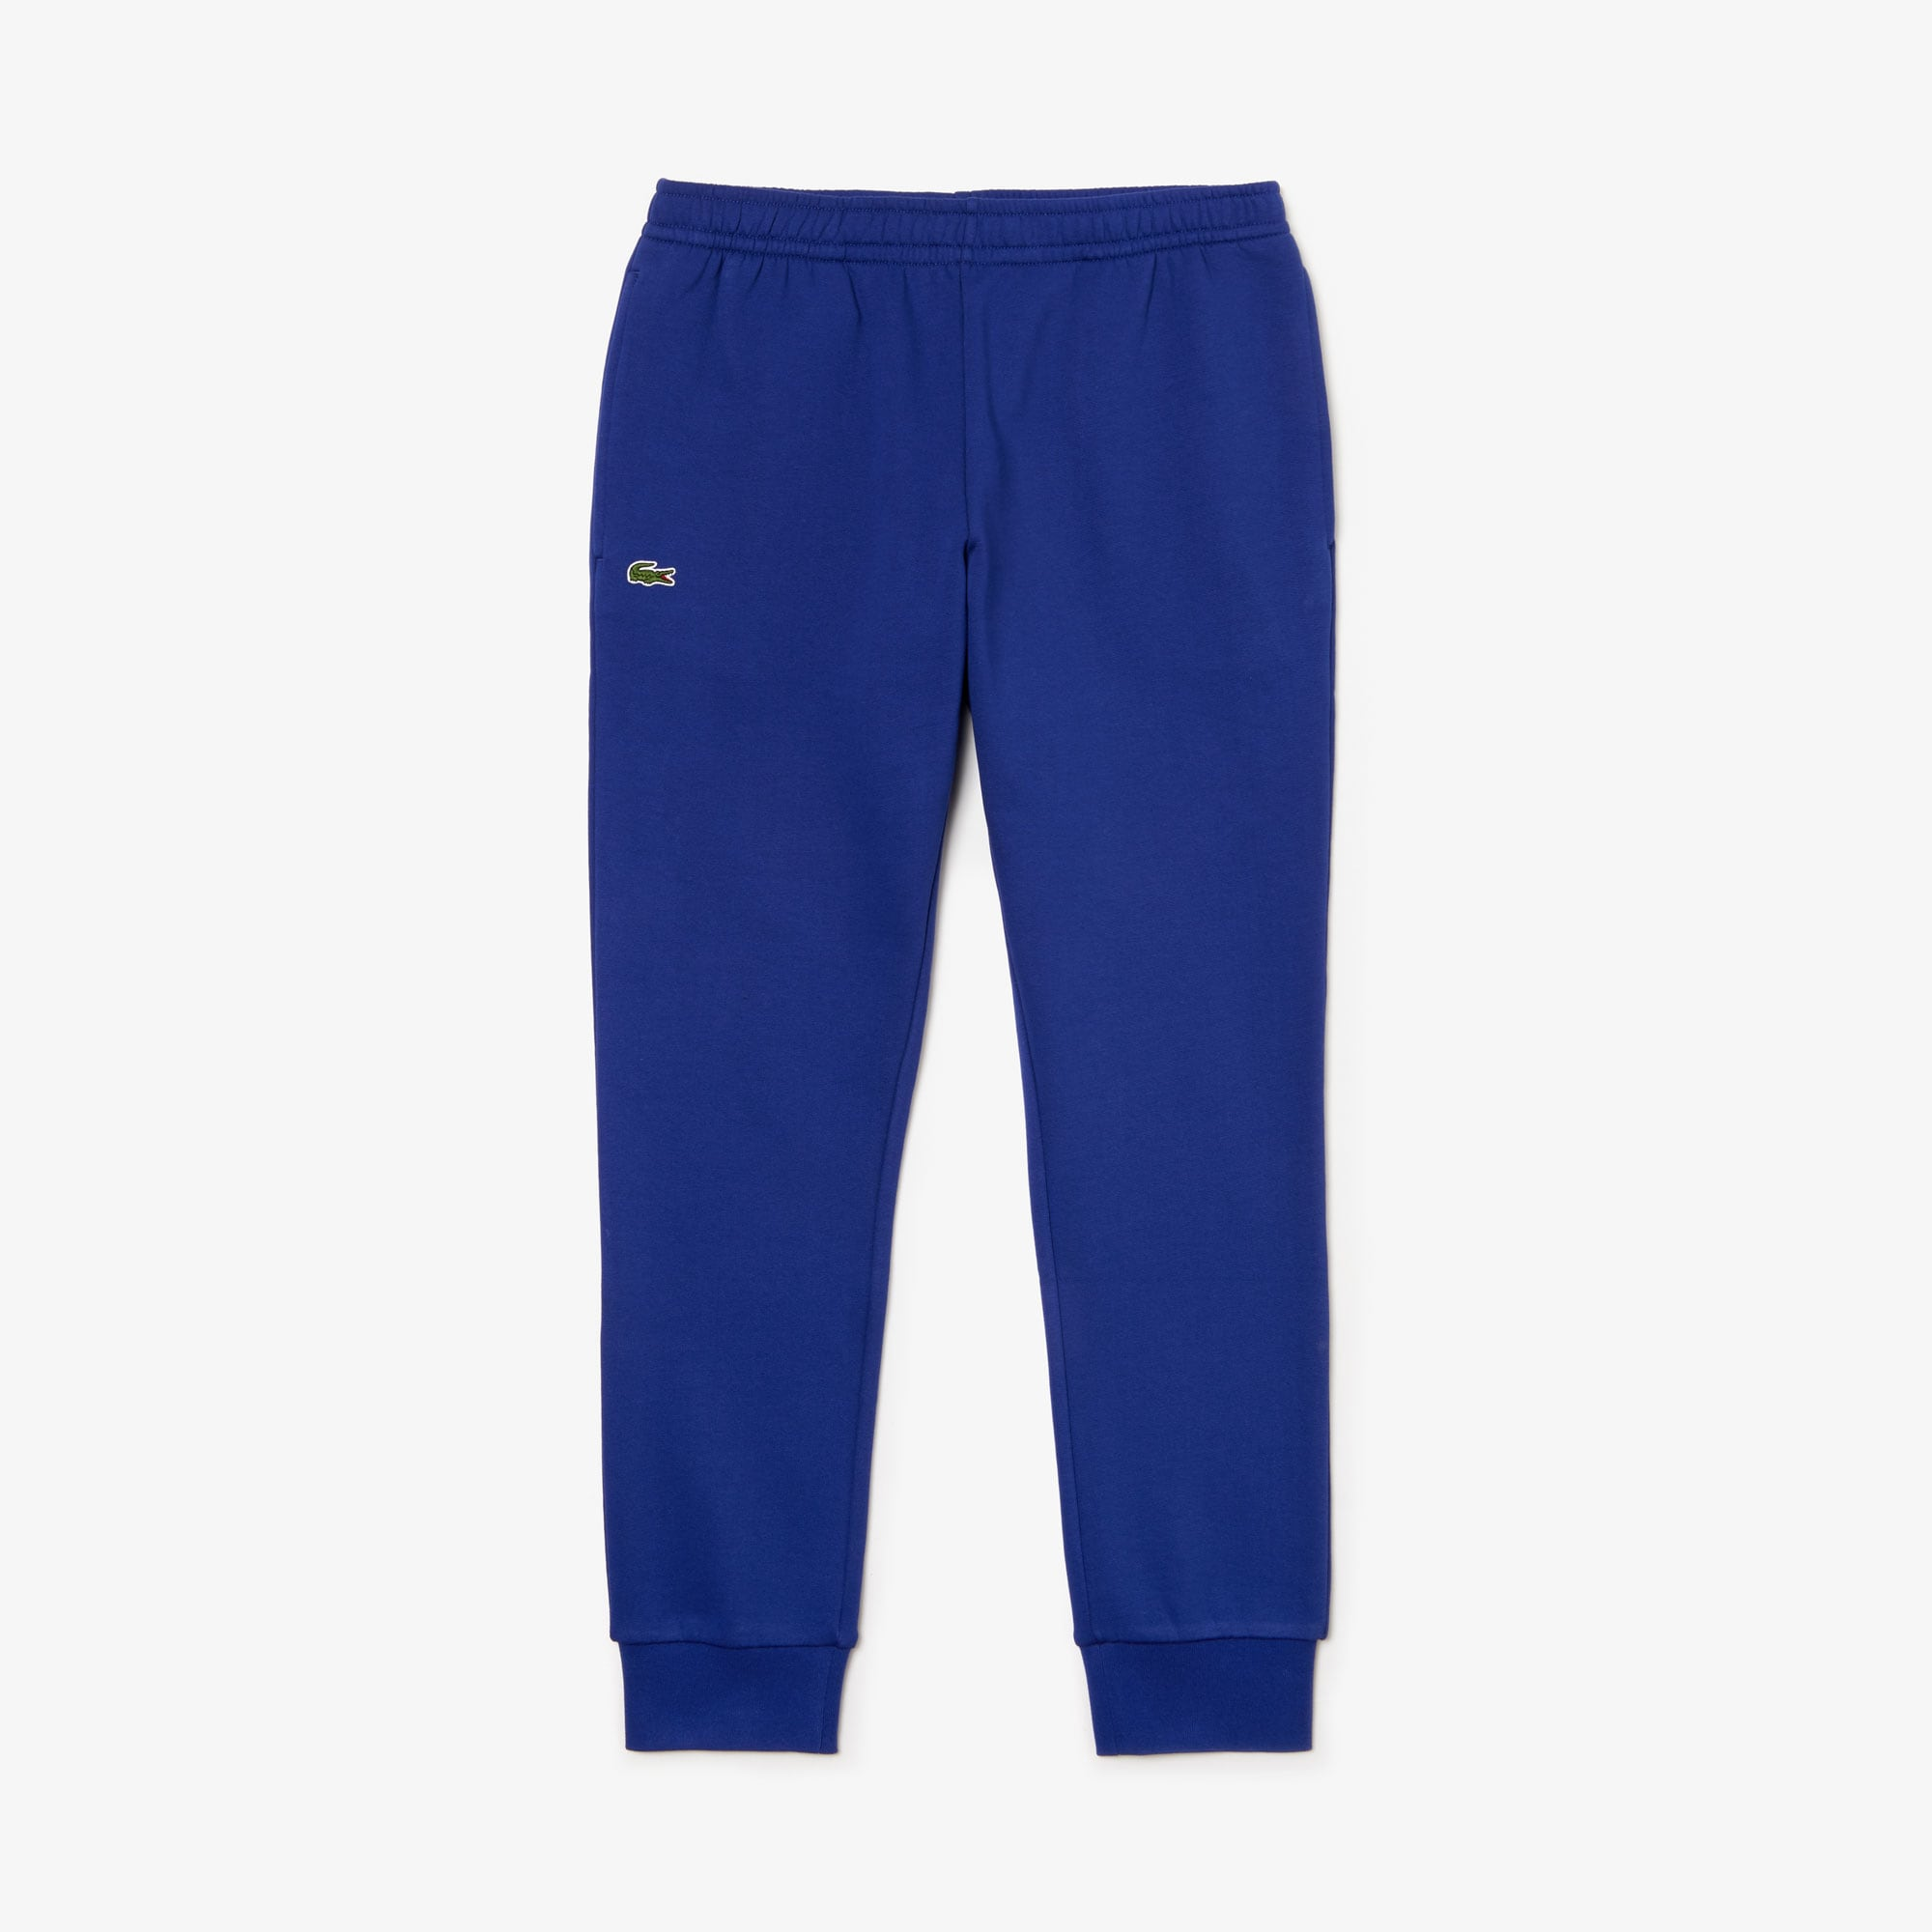 Pantalon de survêtement Tennis Lacoste SPORT coupe regular